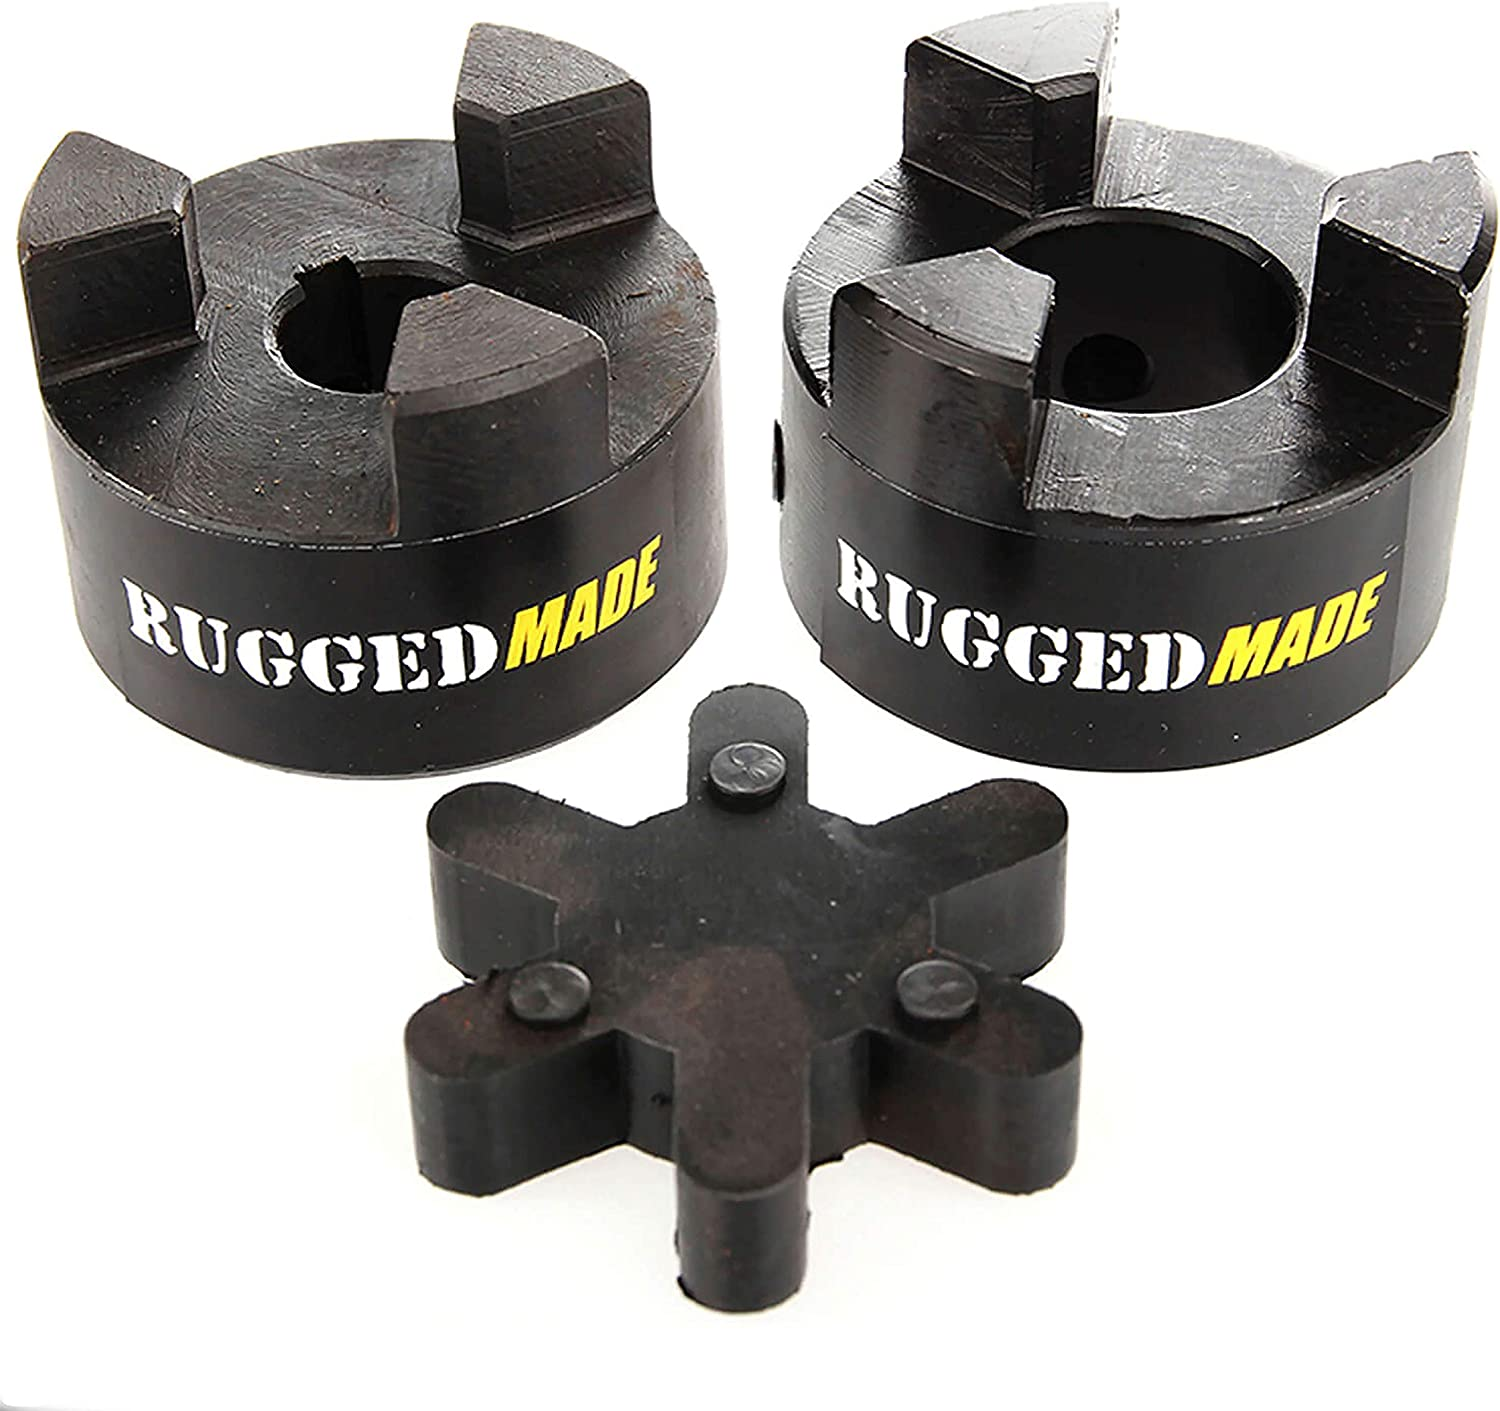 RuggedMade Hydraulic Log Splitter Build Kit 16 GPM Pump Engine Mounting Bracket Coupler for 3//4 Engine Shaft